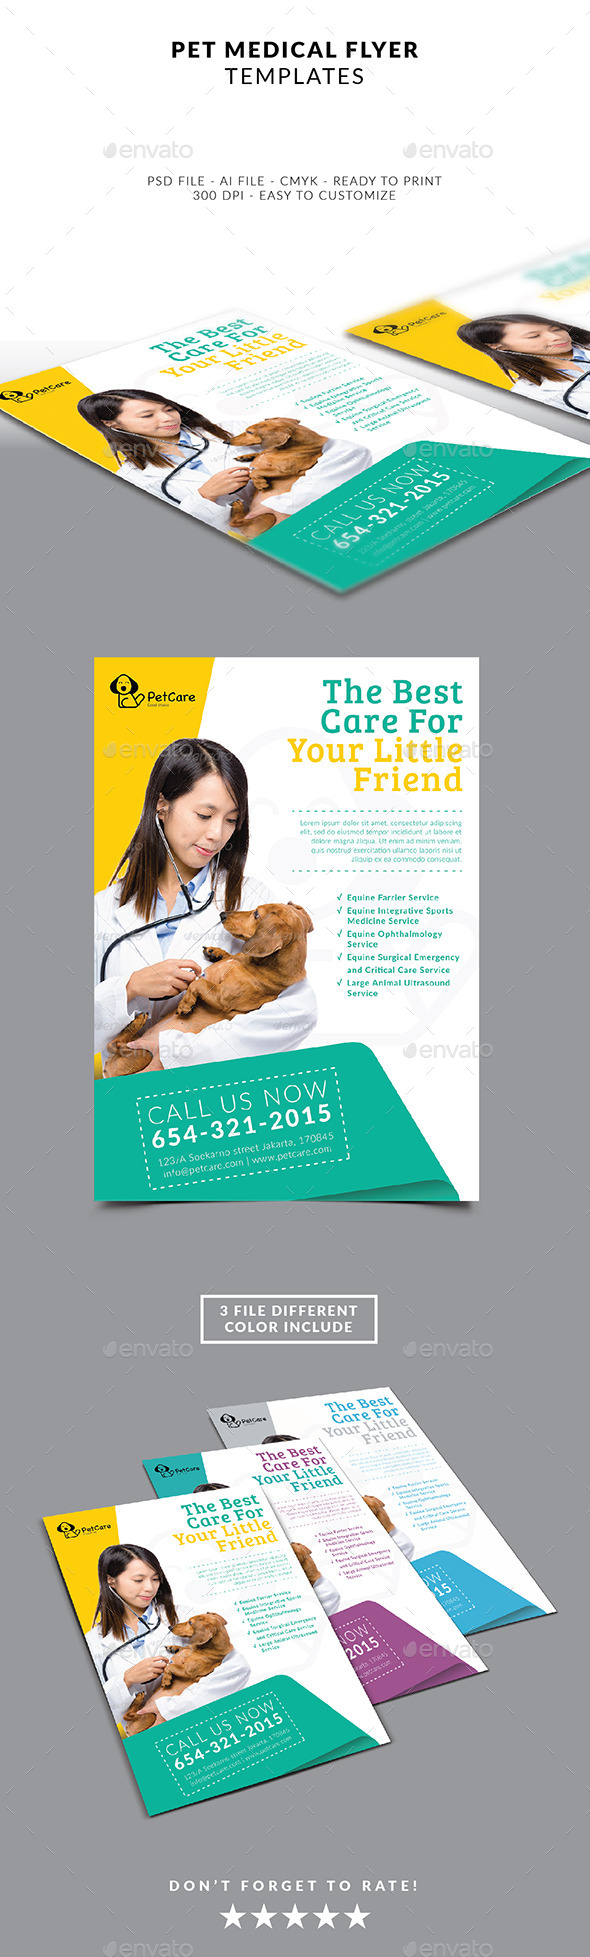 Pet Services Flyer Template - Flyers Print Templates